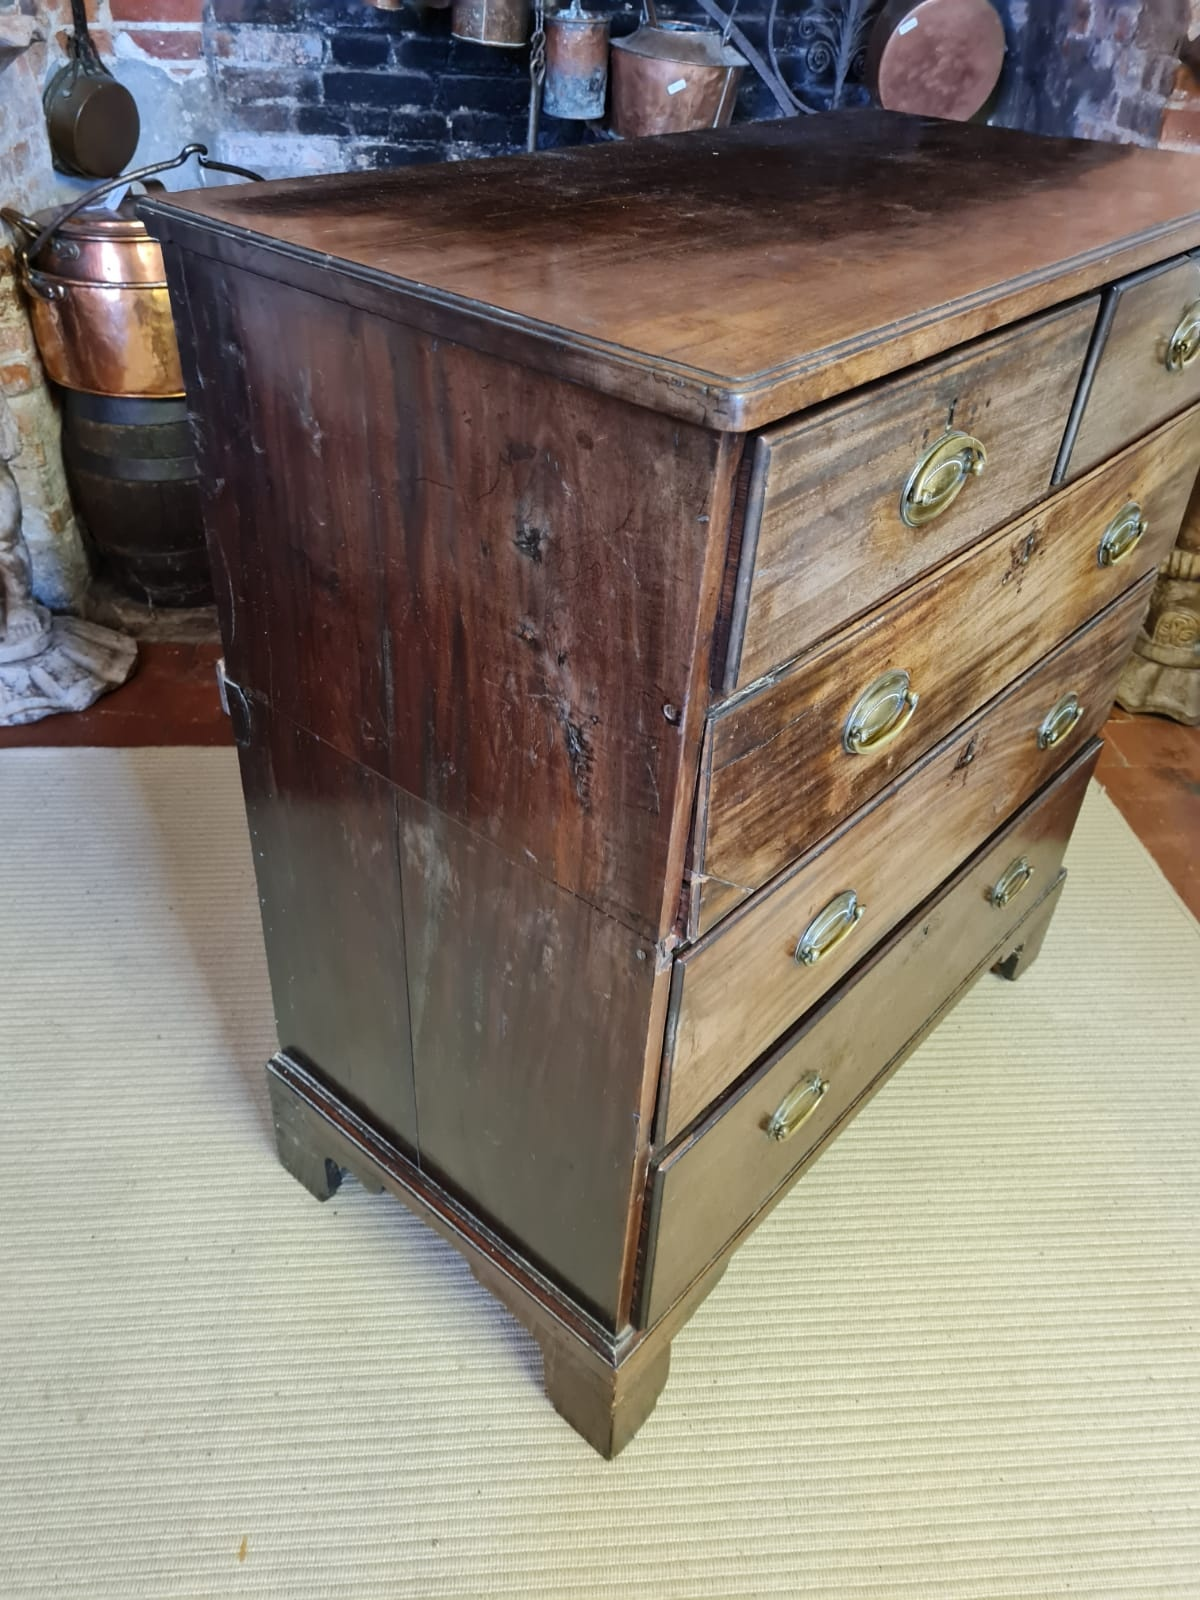 A GEORGIAN MAHOGANY CHEST OF TWO SHORT ABOVE THREE LONG DRAWERS. (93cm x 49cm x 103cm) Condition: - Image 2 of 4